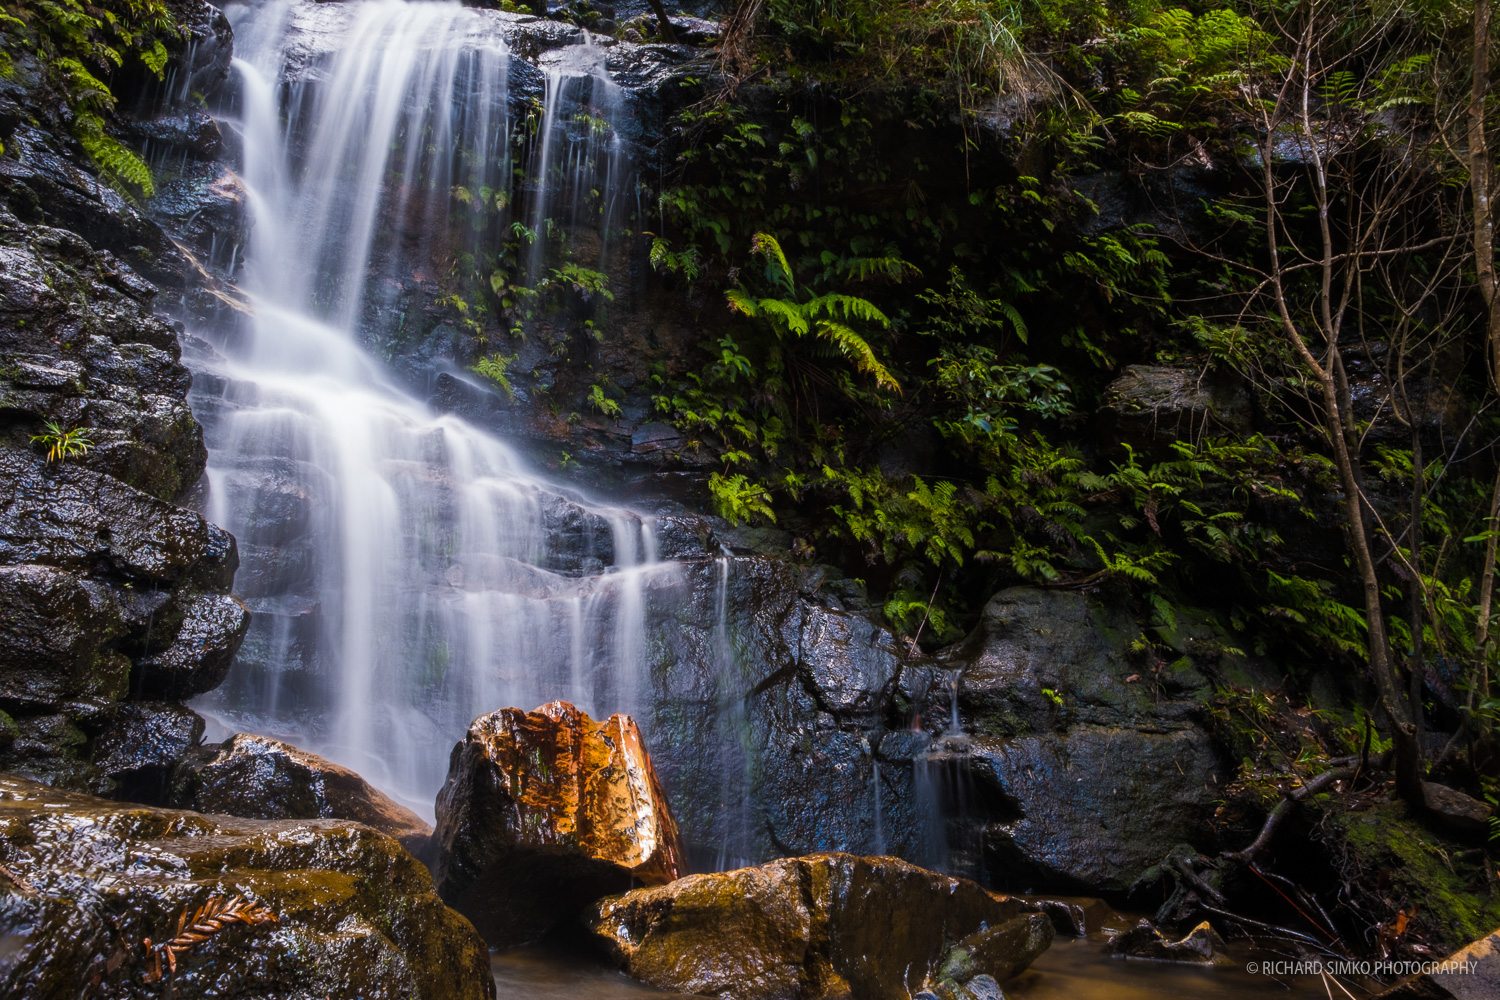 Smaller cascade with red rock at Wentworth Falls track.